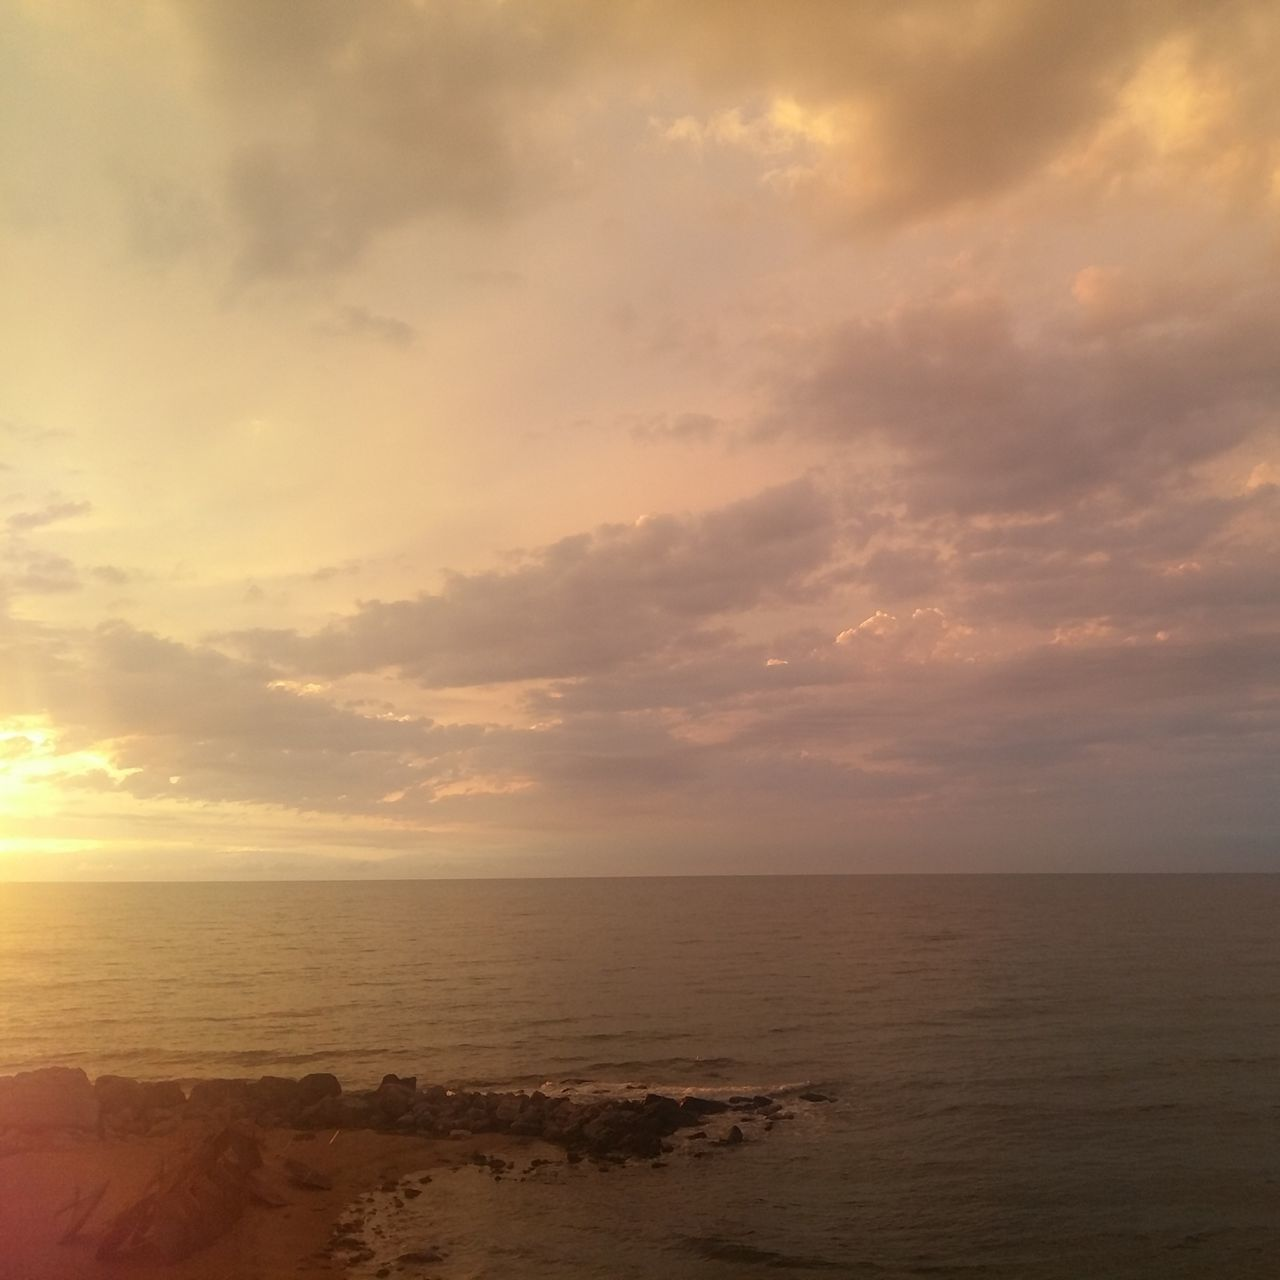 Sea Beach Cloud - Sky Tranquility Horizon Over Water Sun Dramatic Sky Reflection Landscape Sky Scenics Nature Water Vacations No People Beauty In Nature Outdoors Tranquil Scene Summer St Konstantin And Elena Varna,Bulgaria No Filter Sunrise Gold Colored Dramatic Sky